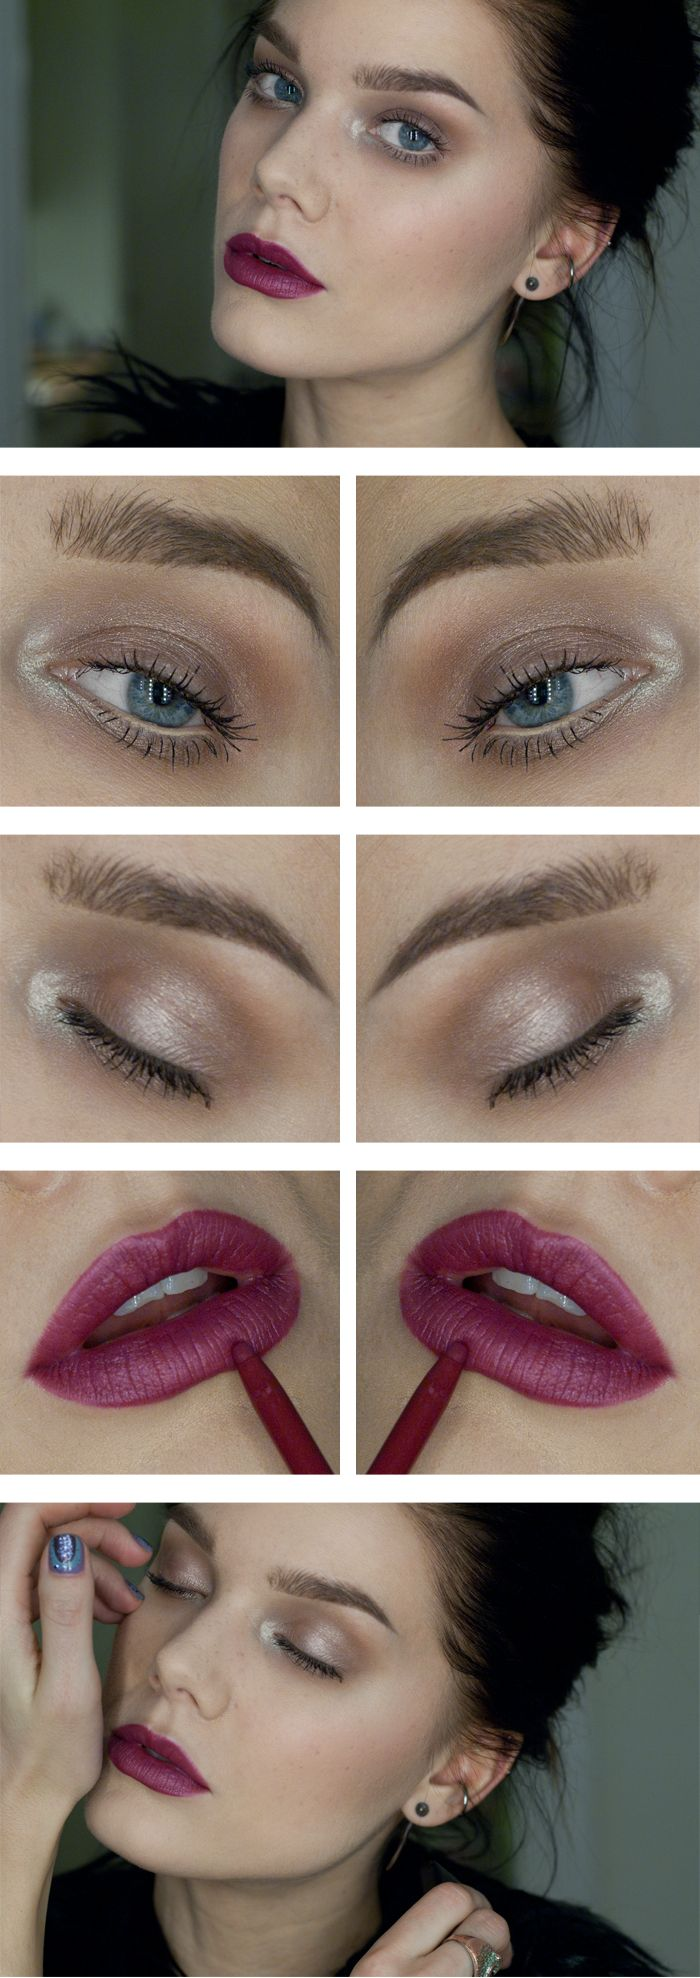 Todays look – Lost in a daydream - Linda Hallberg - burgundy lipstick - dark berry lipstick - make up